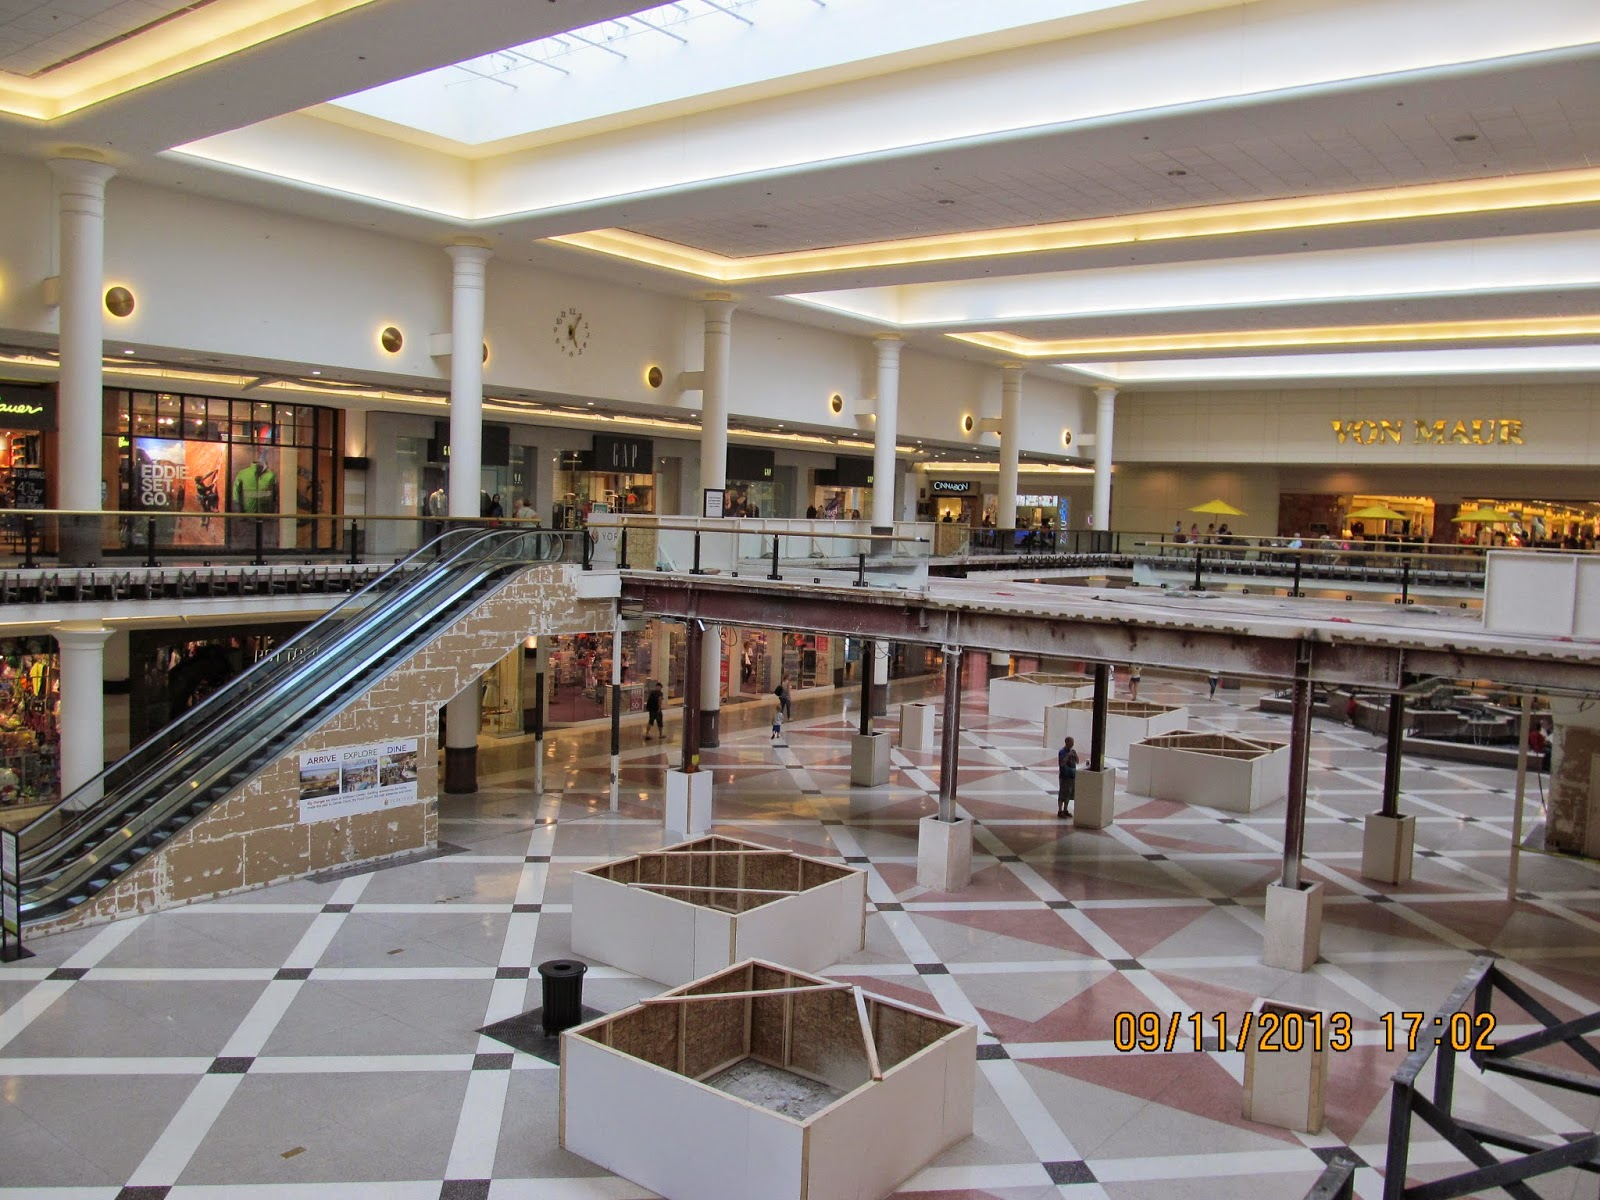 It's a nice mall with all the basics and affordable trendy stores and a few